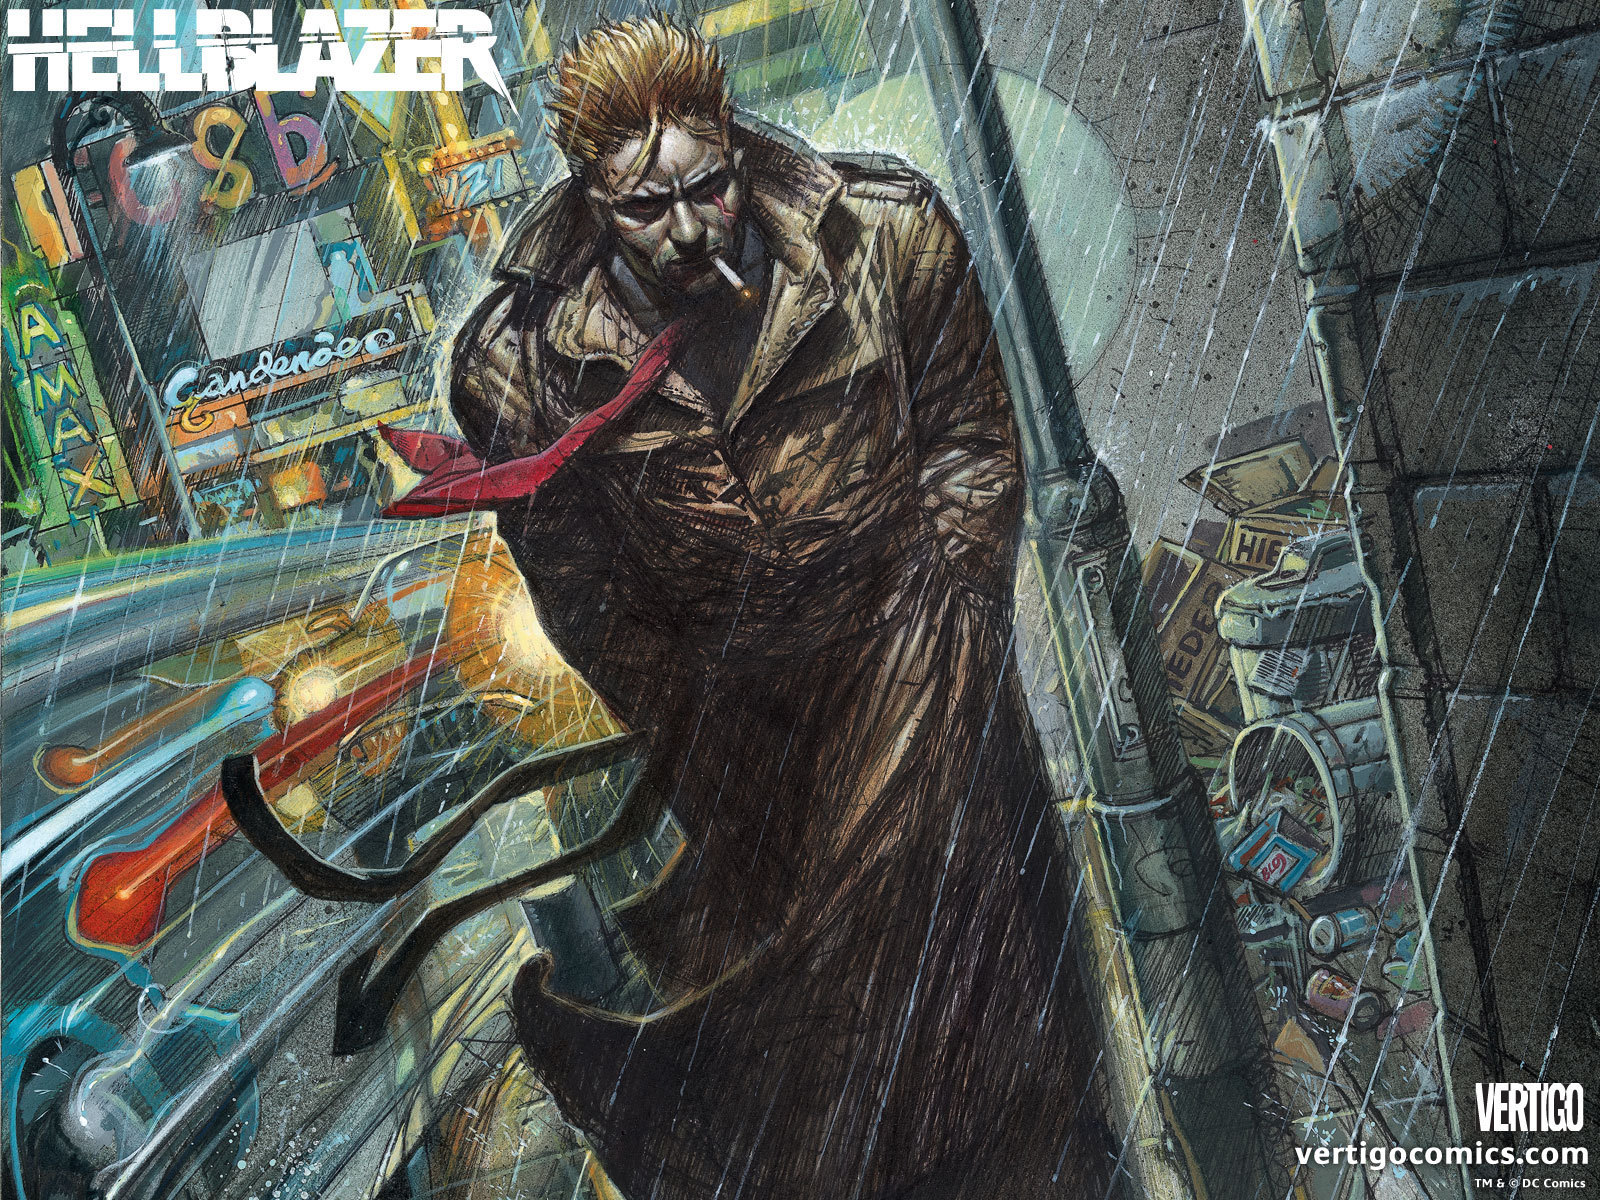 Hellblazer Official Vertigo Wallpapers   Vertigo Comics 1600x1200